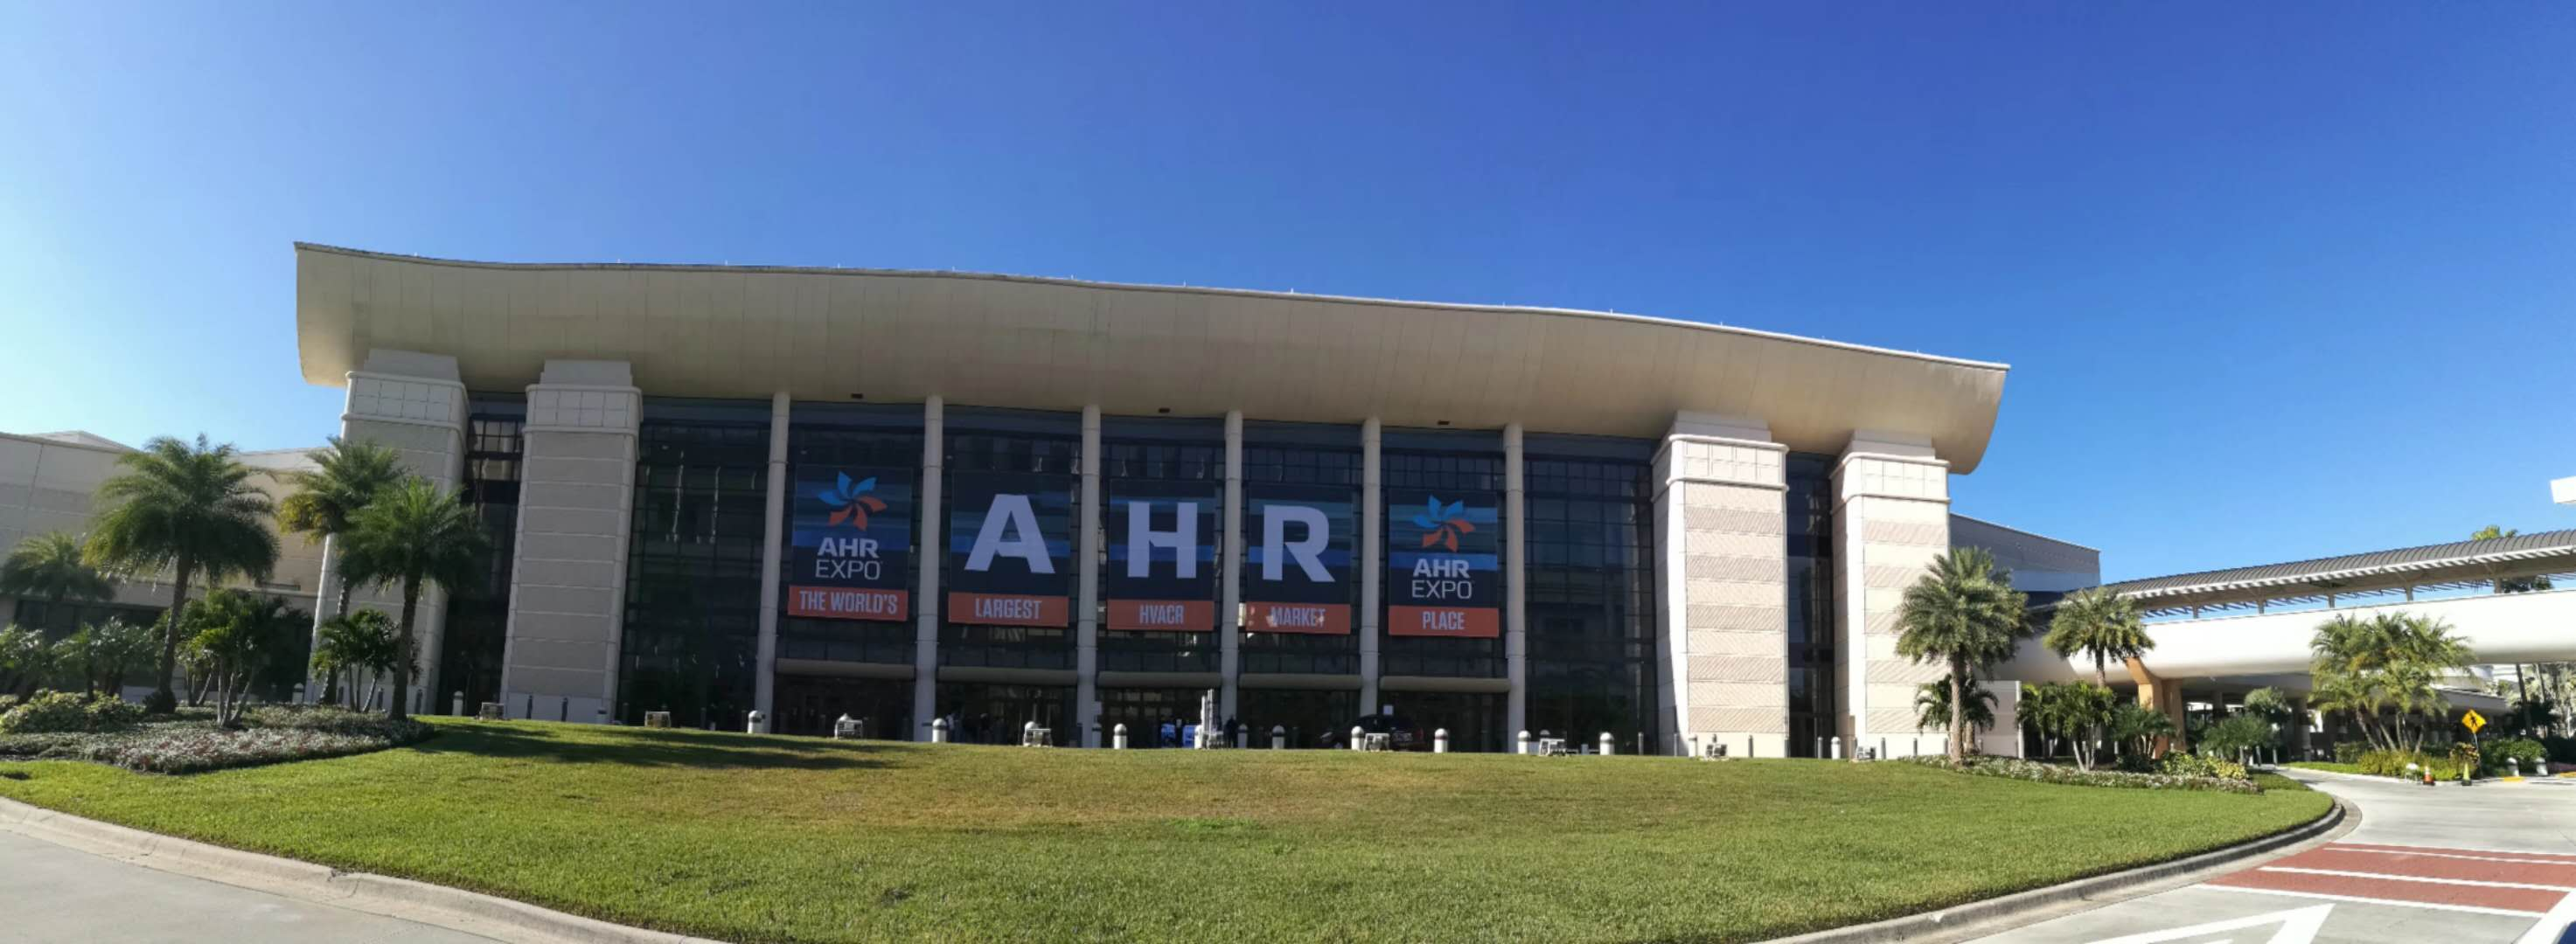 2020 AHR Expo, WINMORE Is Here